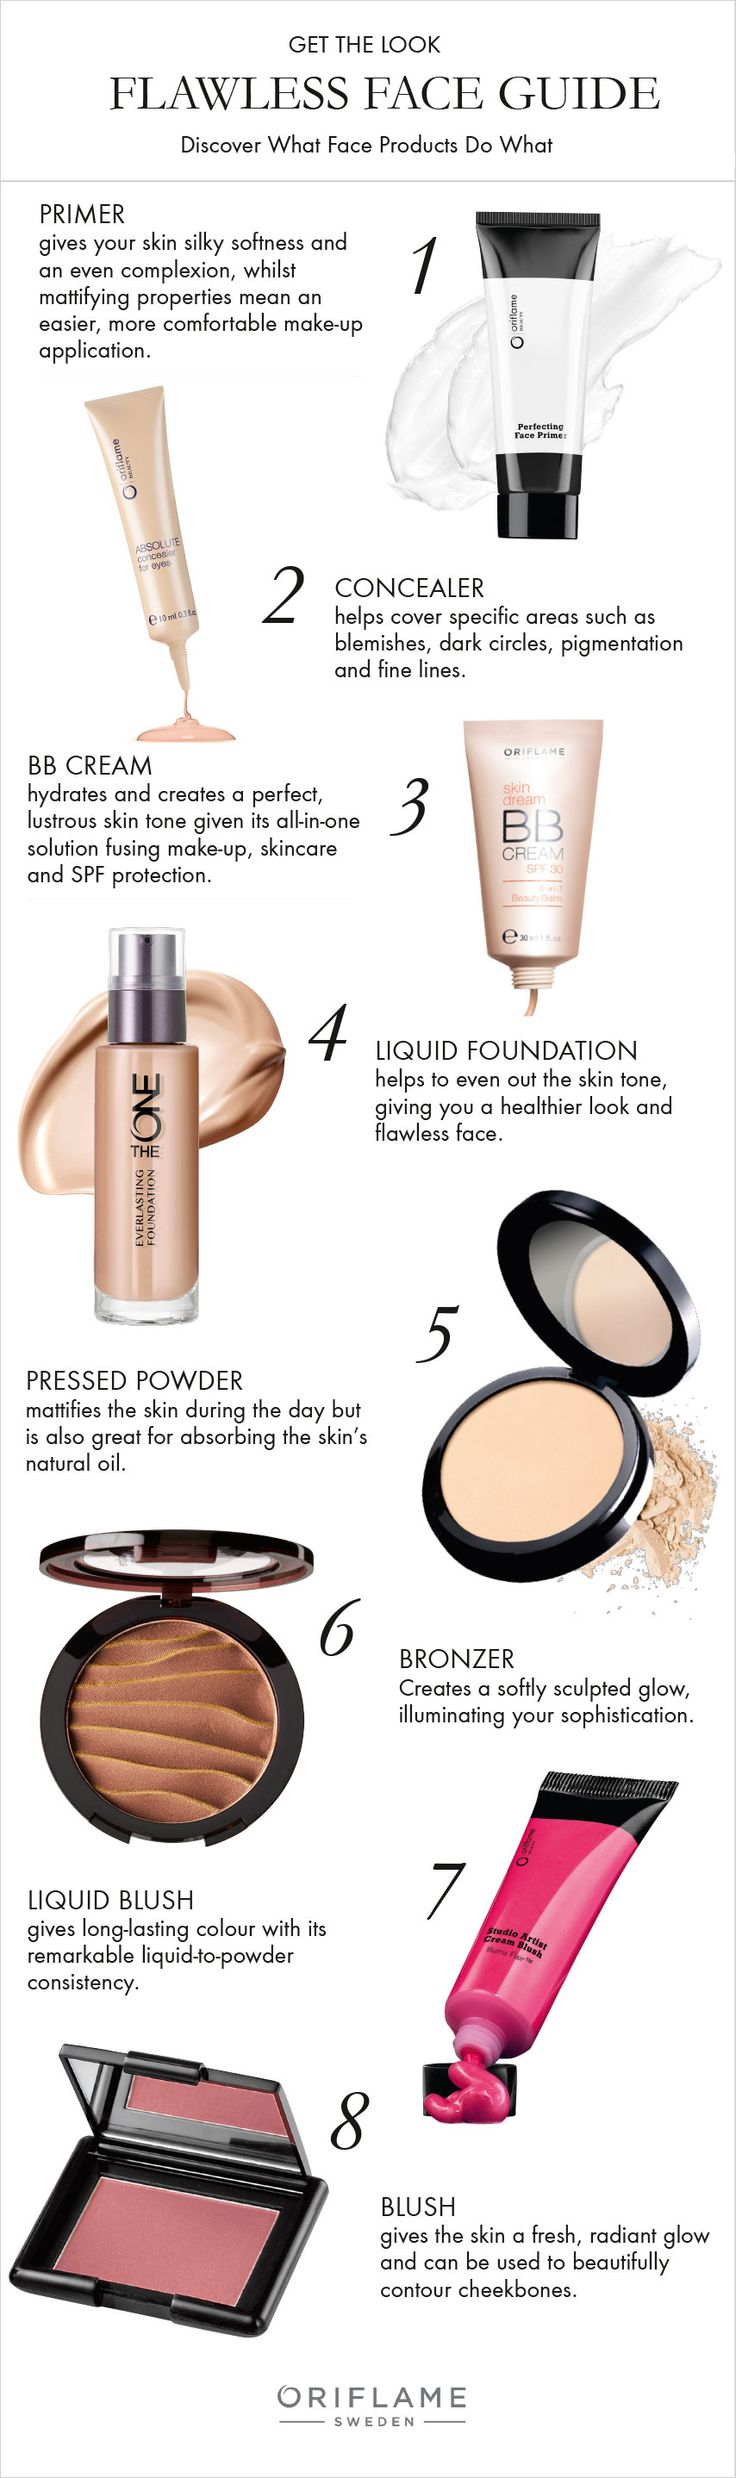 Primers v. Powder? BB Cream v. Foundation? With so many face products to help you achieve that flawless look, we wanted to simplify what product does what. Now's your chance to get a flawless face, without the fuss!